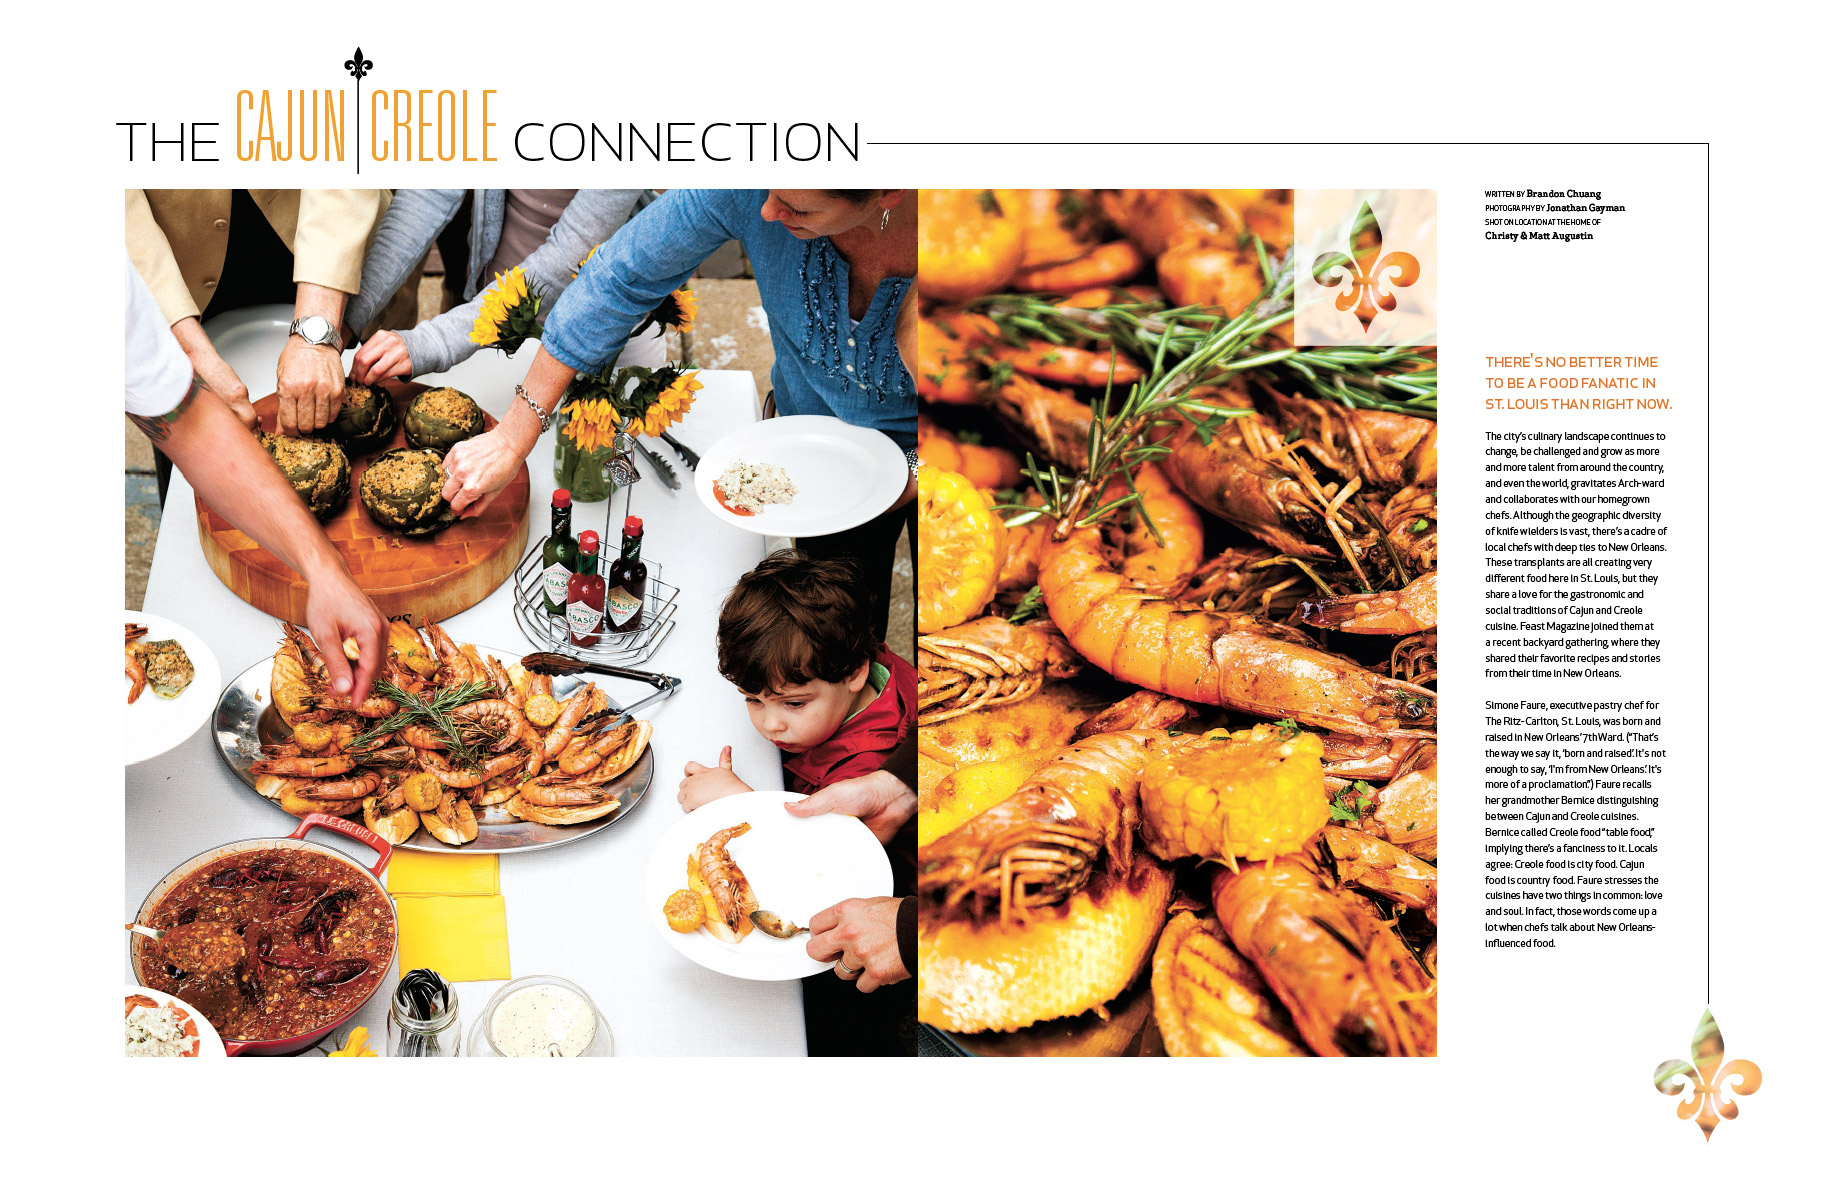 Tear Sheet of the June 2012 Issue of Feast Magazine